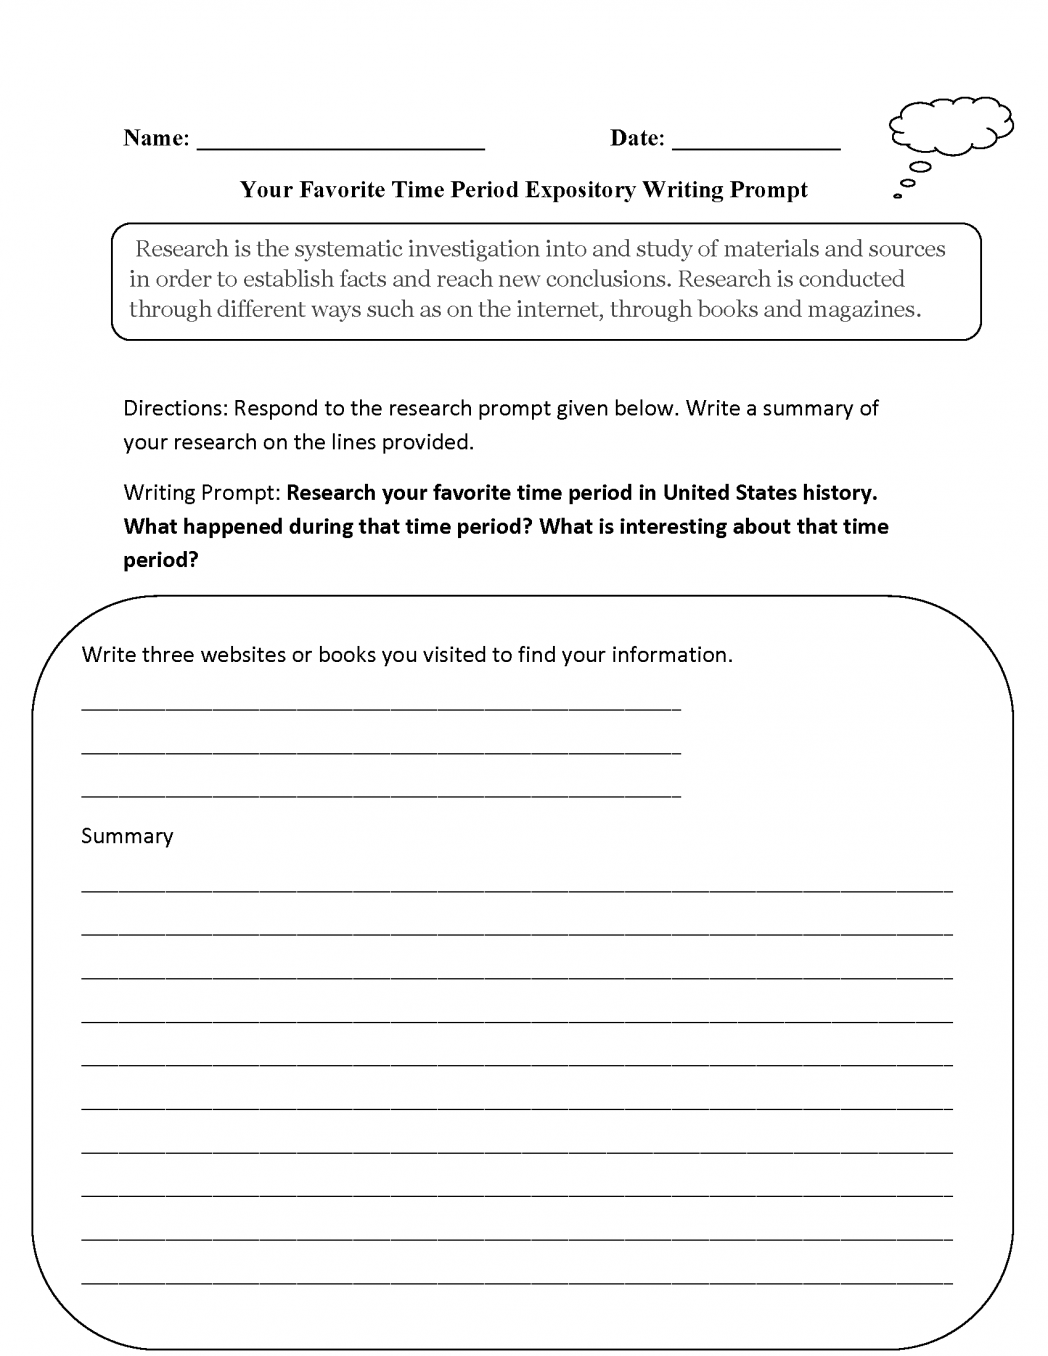 018 Essay Example Good Informative Topics Prompts Favorite Time Period Expository Writing P To Write An On The Topic Of Immigration Remarkable For 4th Grade High School 6th Graders Full